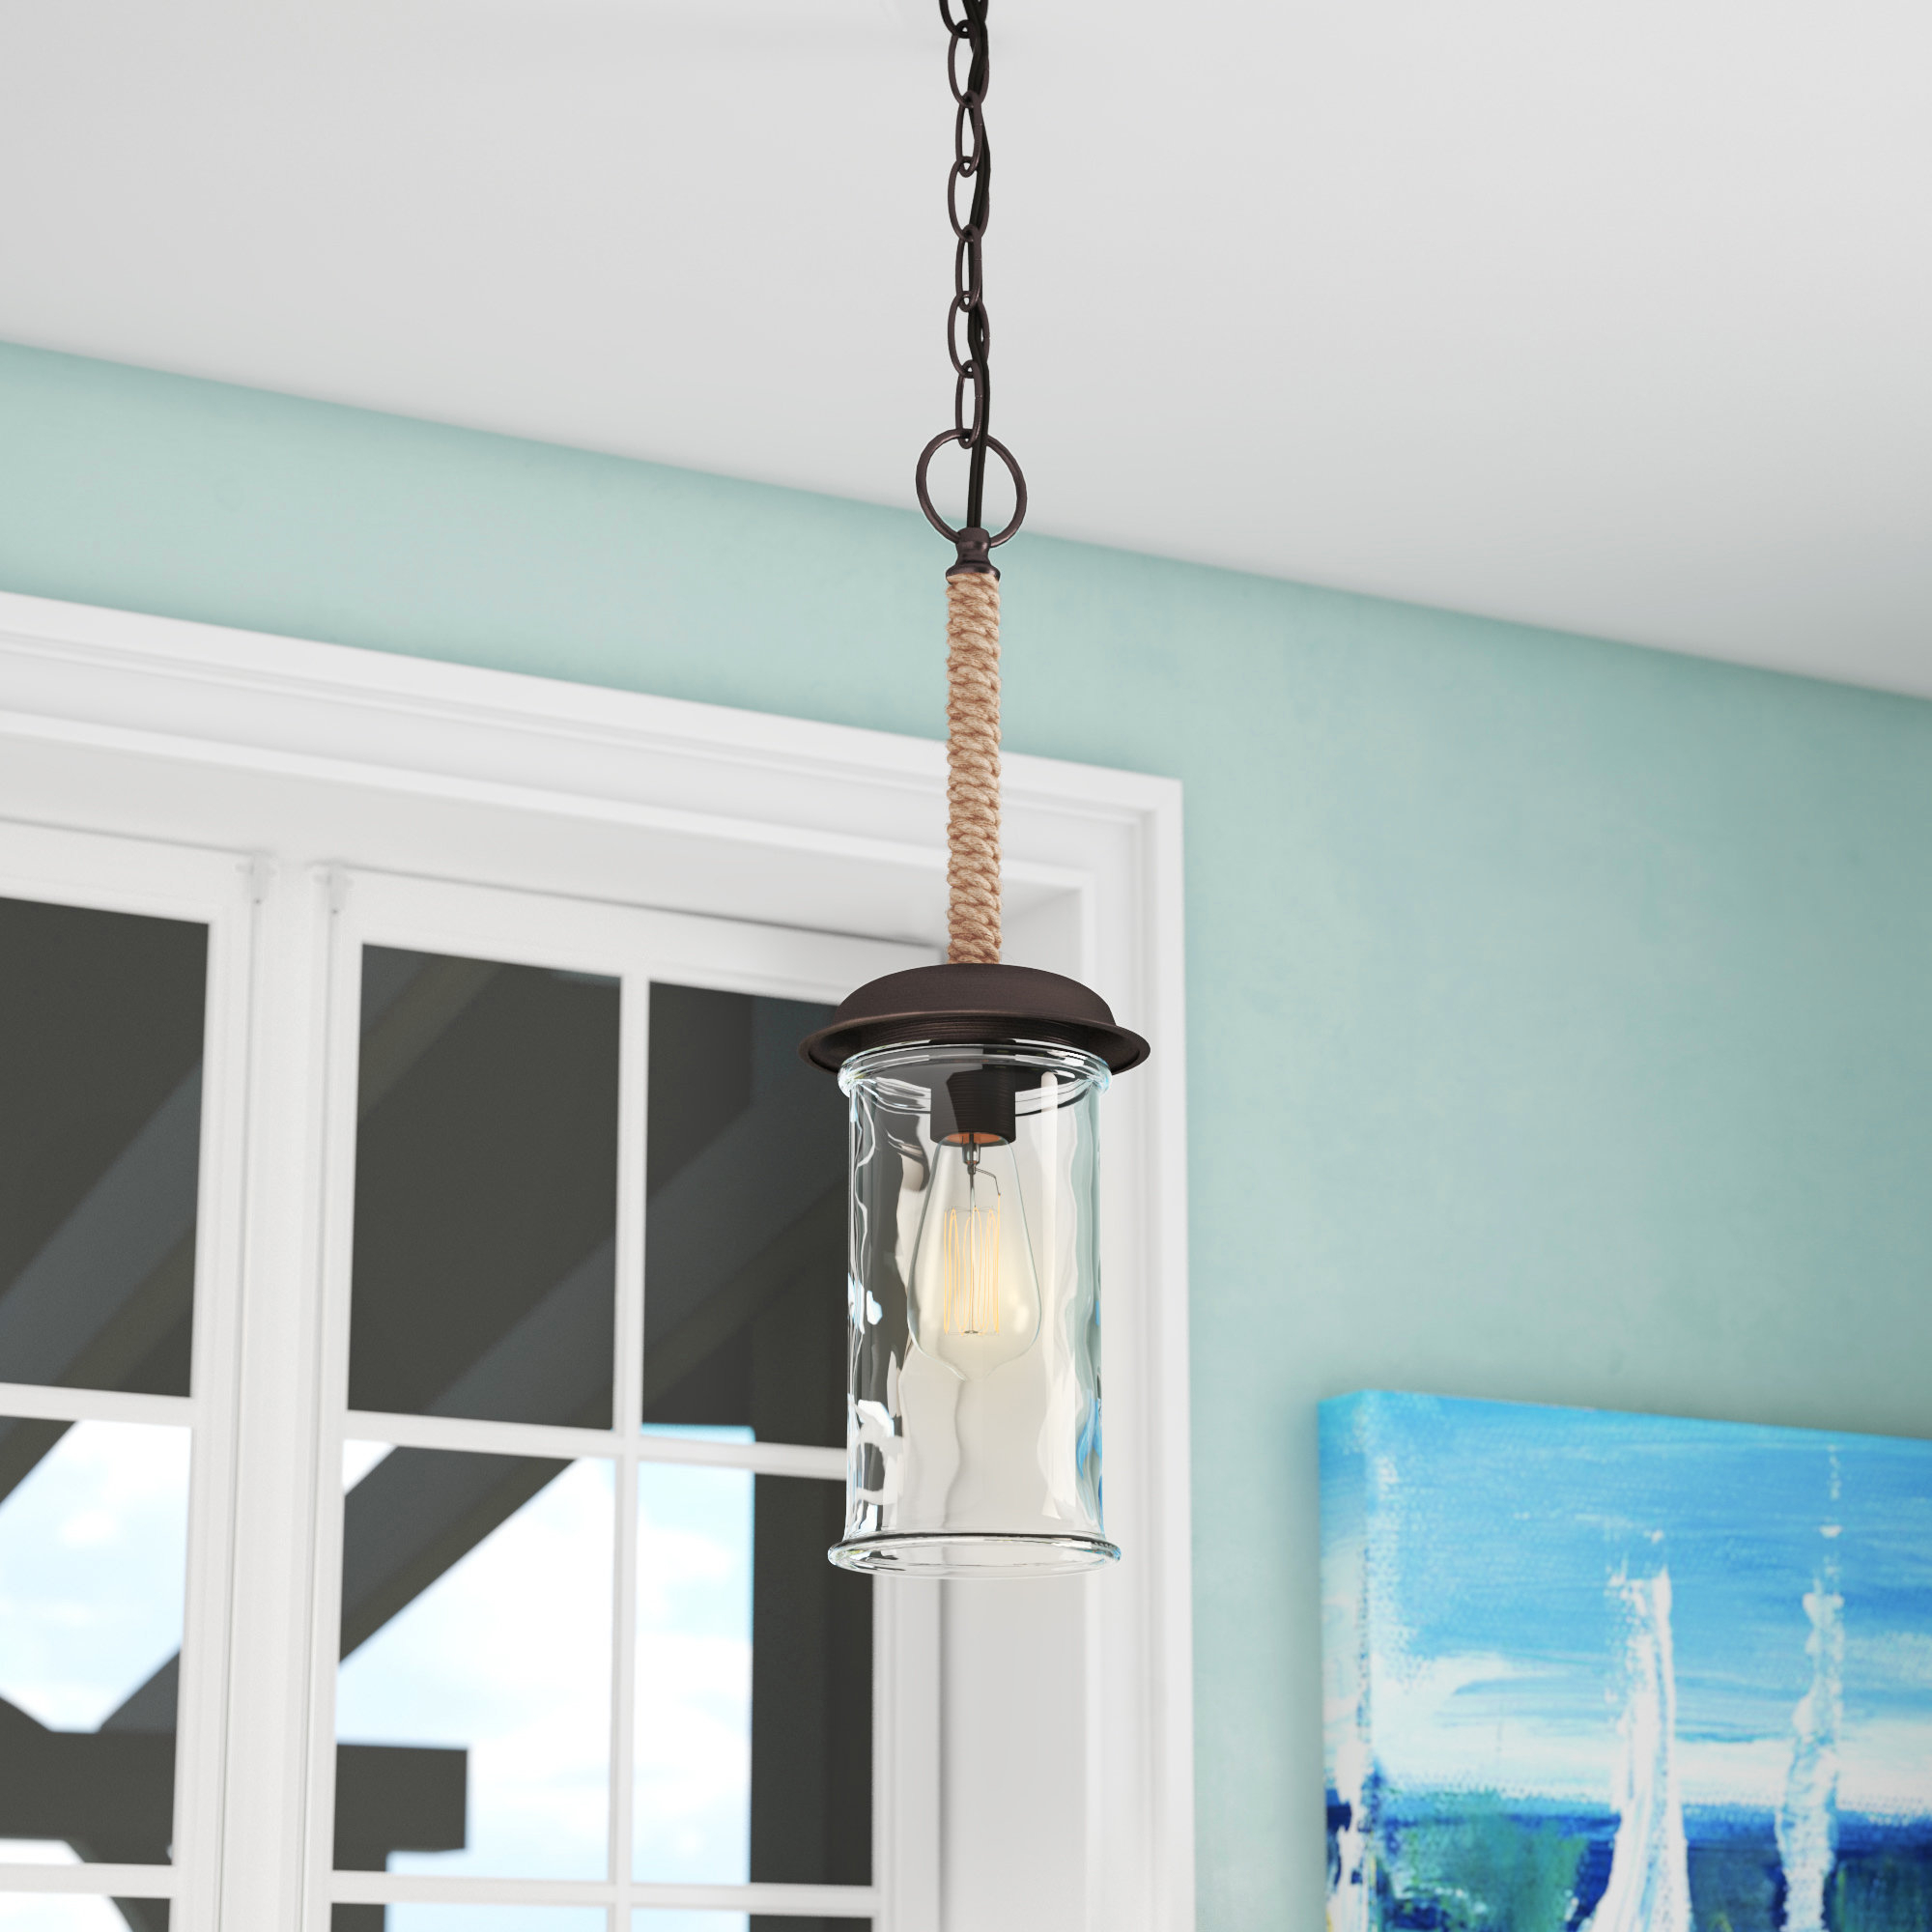 Schutt 1 Light Cylinder Pendants In Most Popular Clear/glass Shade Pendant Lighting You'll Love In  (View 14 of 25)